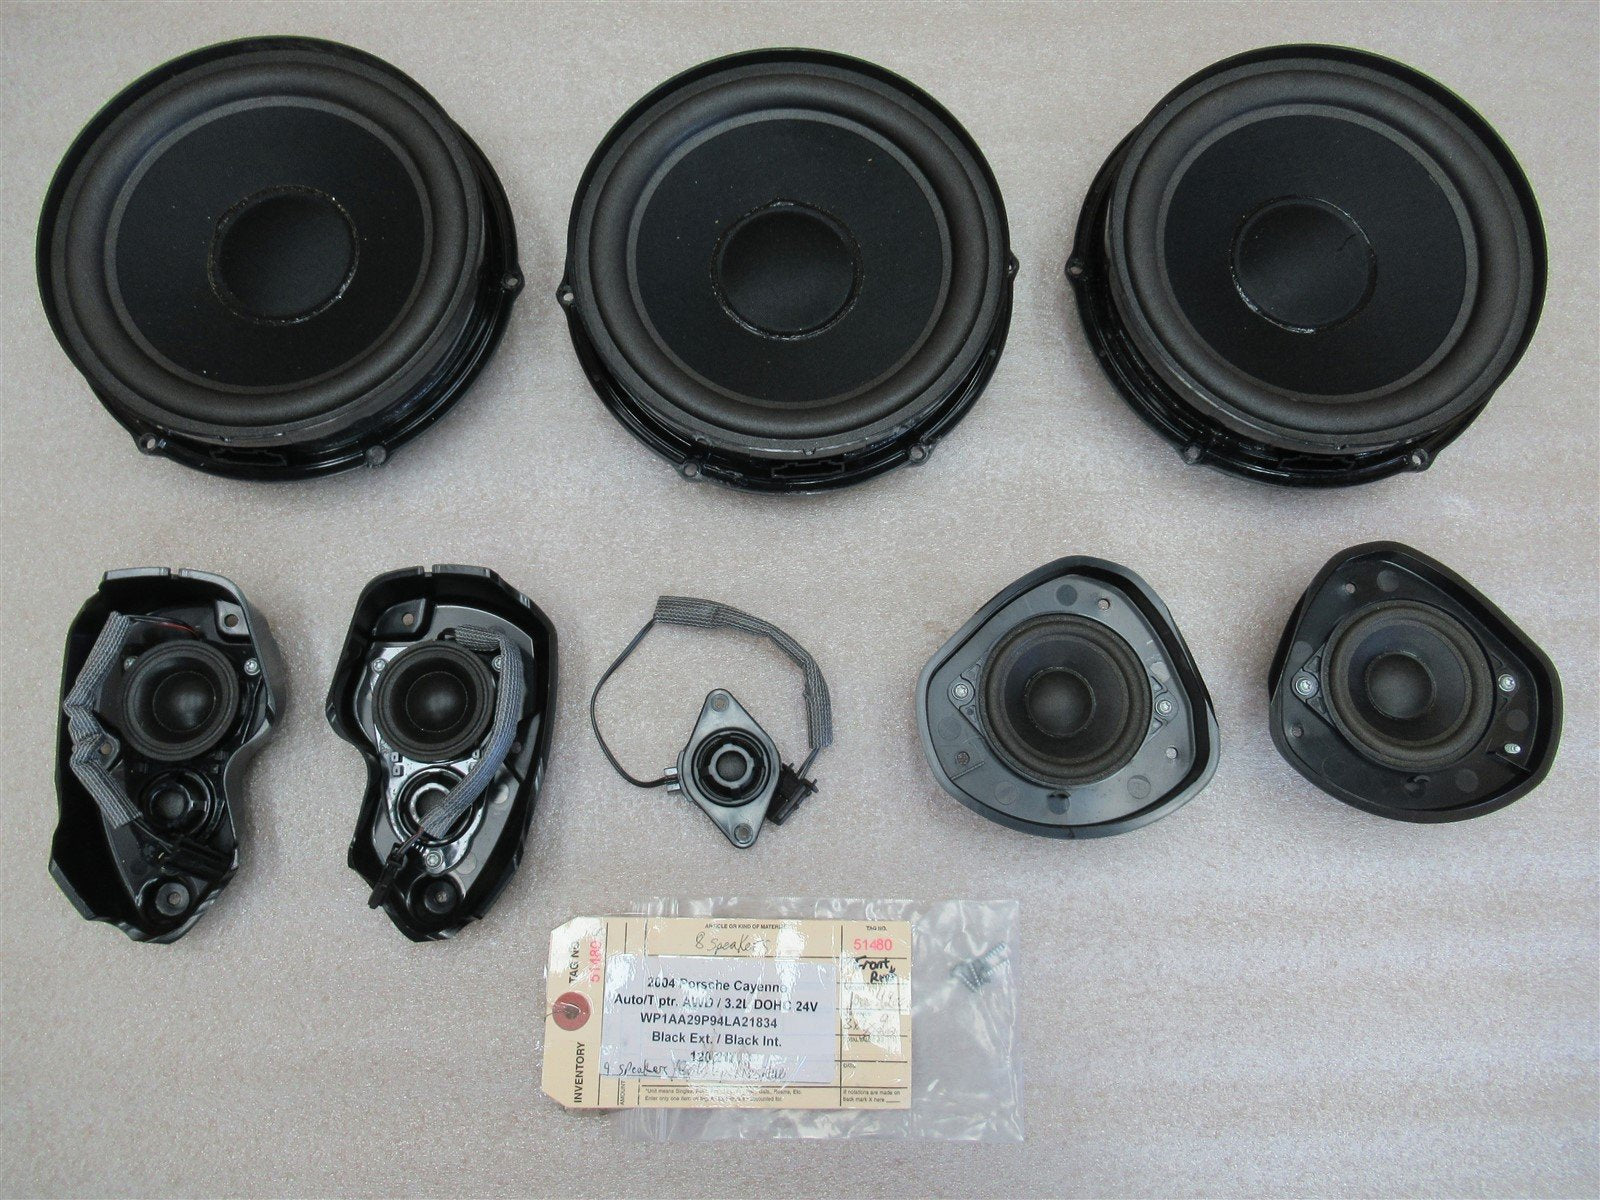 04 Cayenne AWD Porsche 955 FRONT + REAR 8 SPEAKERS 7EO035411A 7EO035411B 120,217